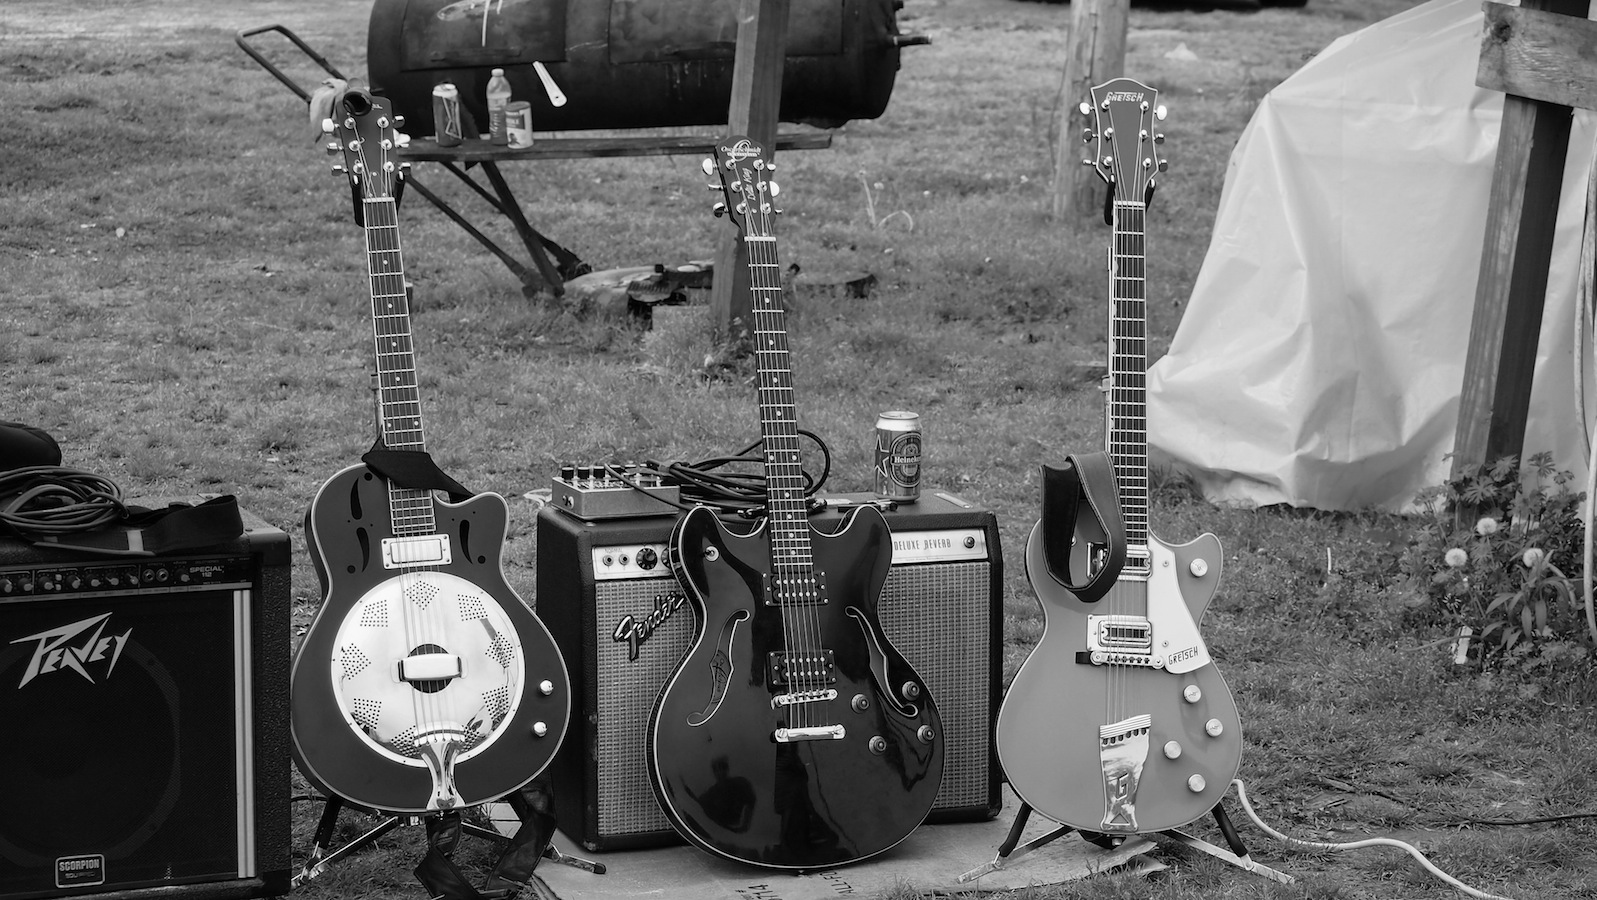 RL's nephew, Joon, had a trailer on land back in the woods just outside Como, Mississippi.  Joon's yard was a common spot for RL to set up and hold hill country blues parties.  Here's RL's guitar (middle) waiting to be played.